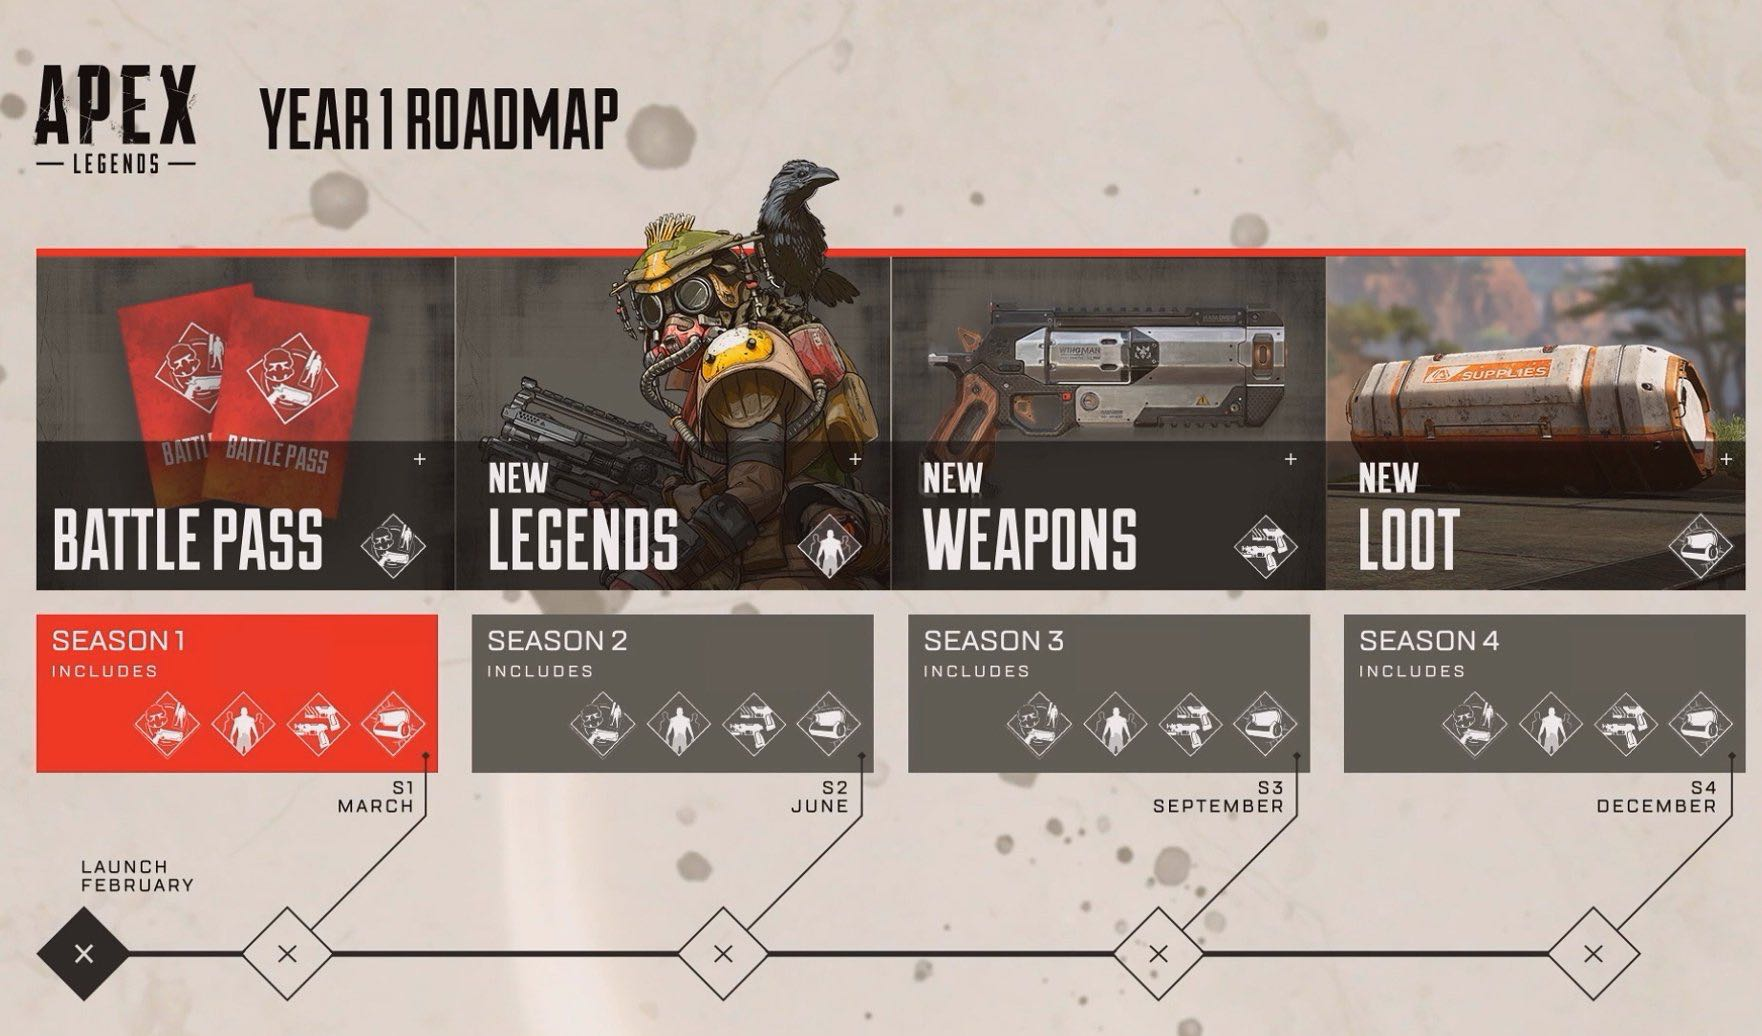 Apex Legends: 3-person squad BR, Hero shooter, Titanfall universe